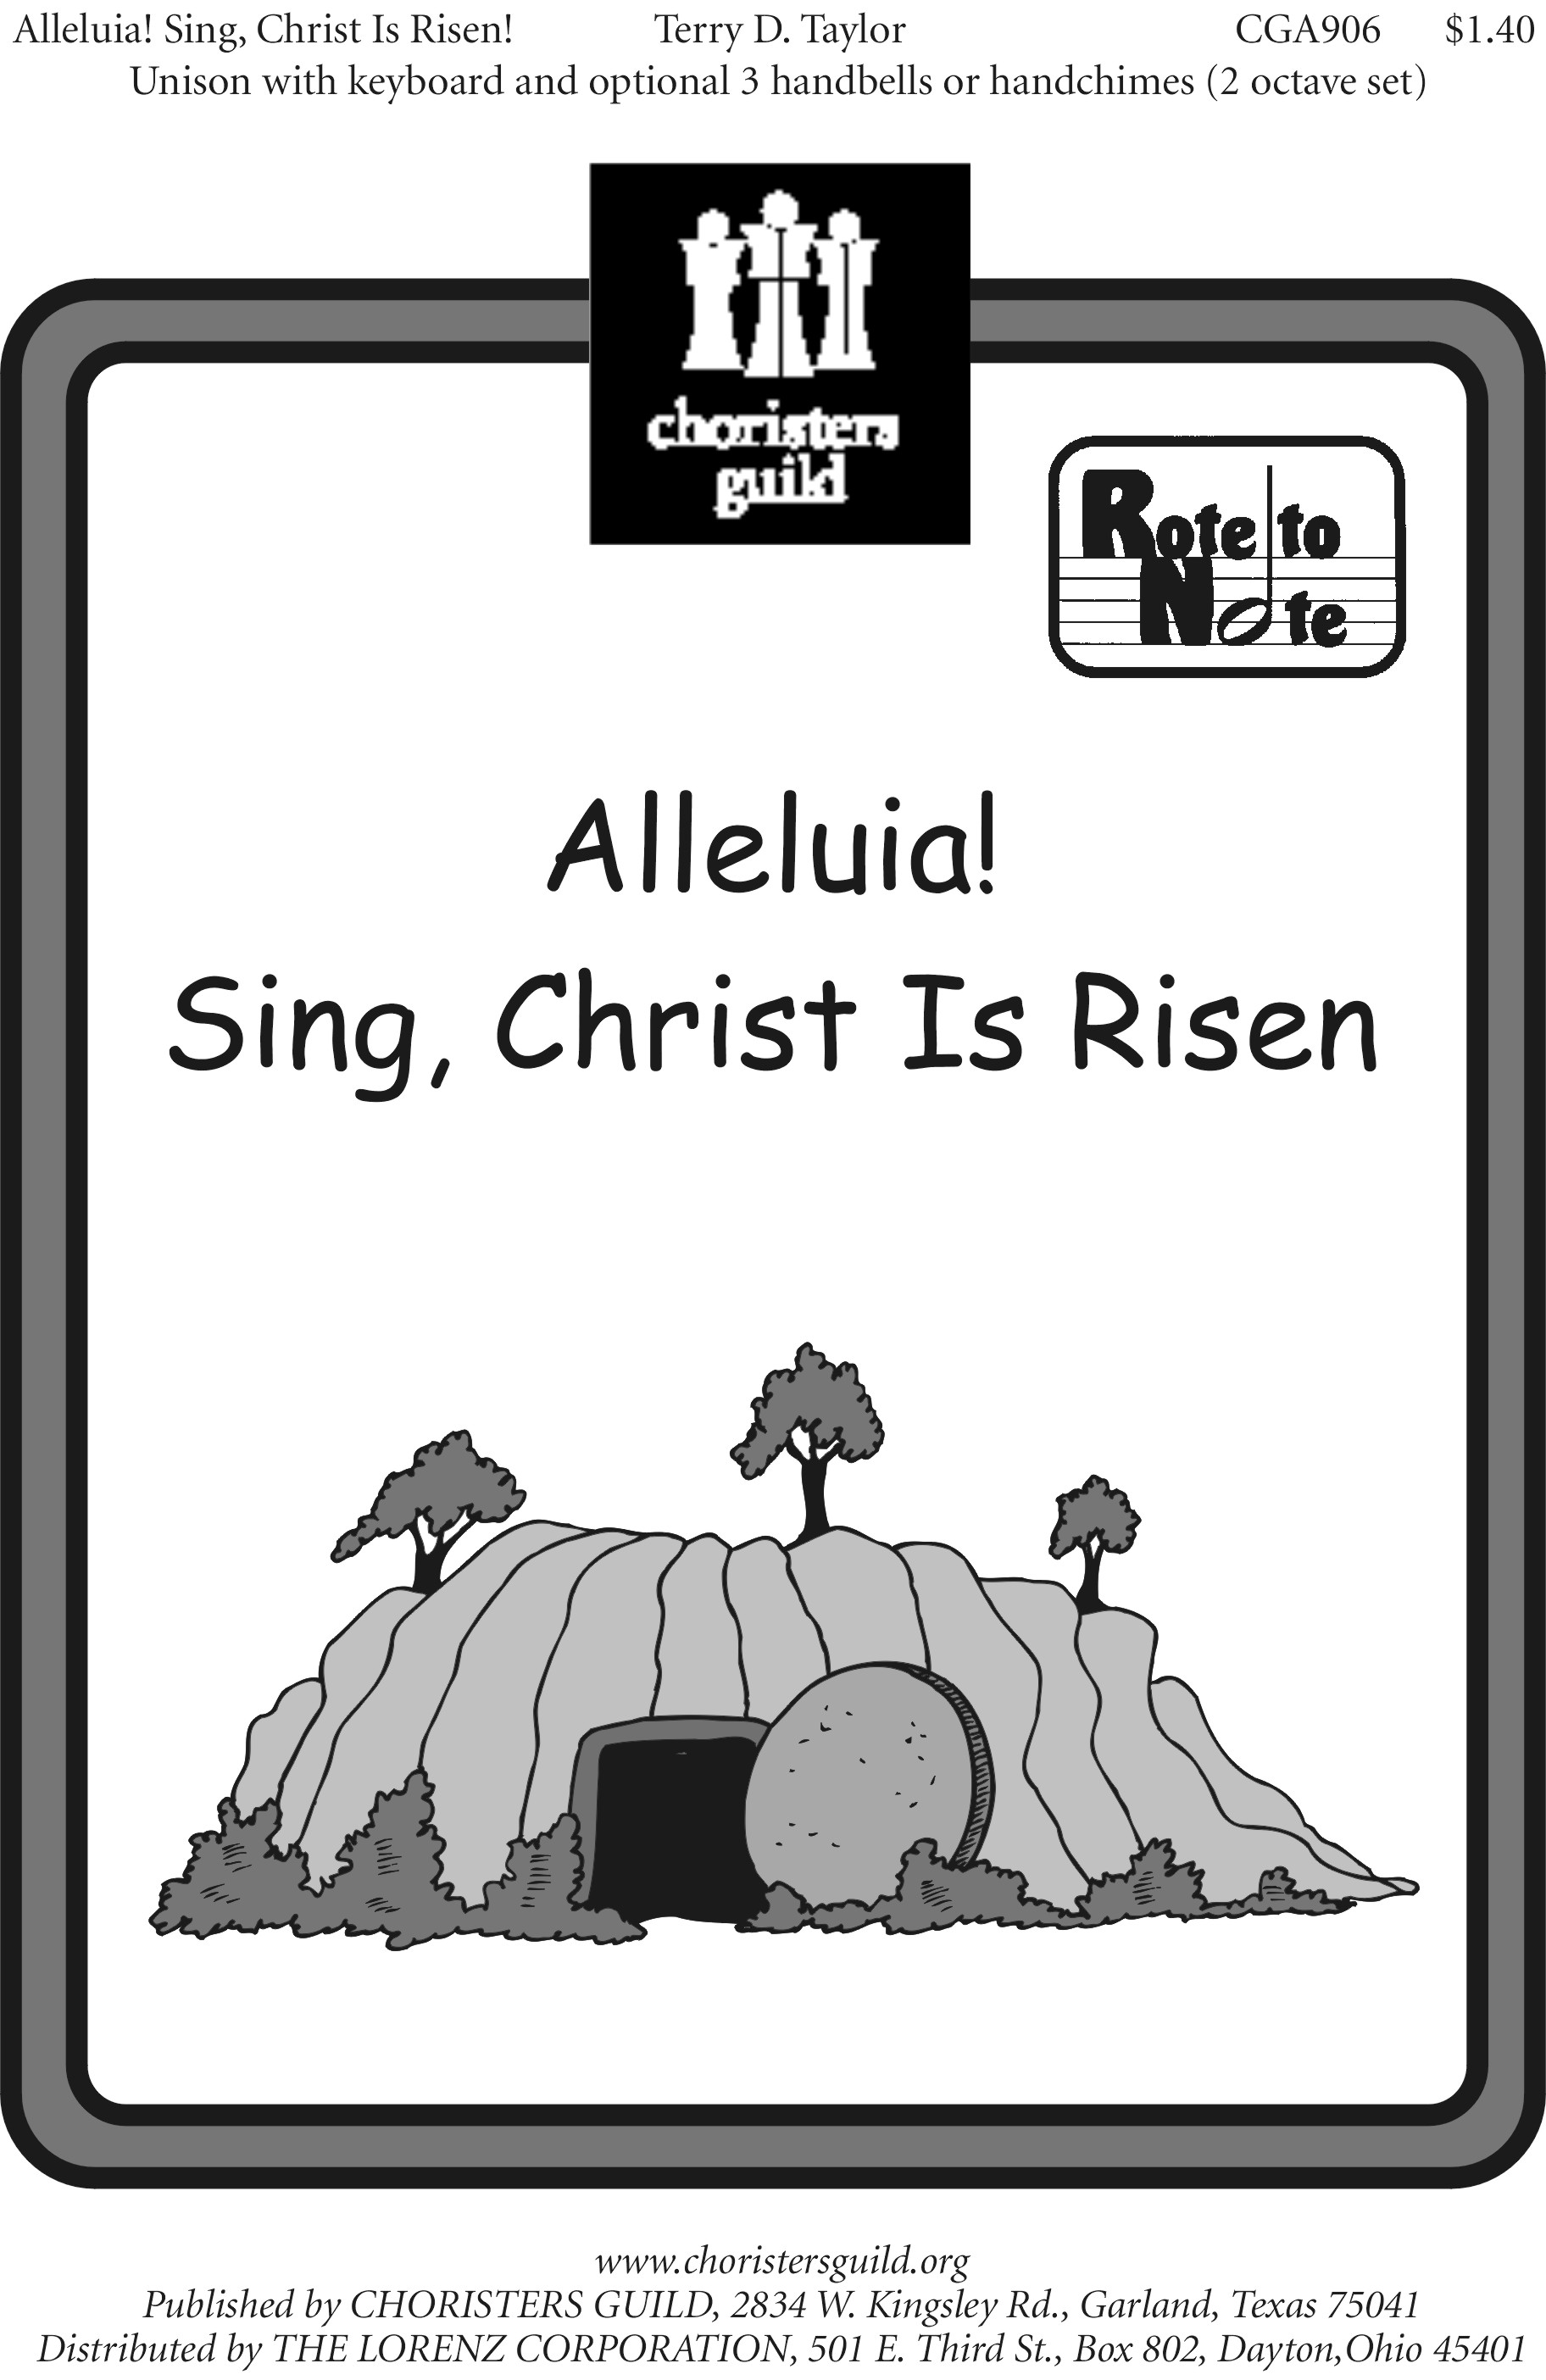 Alleluia! Sing, Christ Is Risen